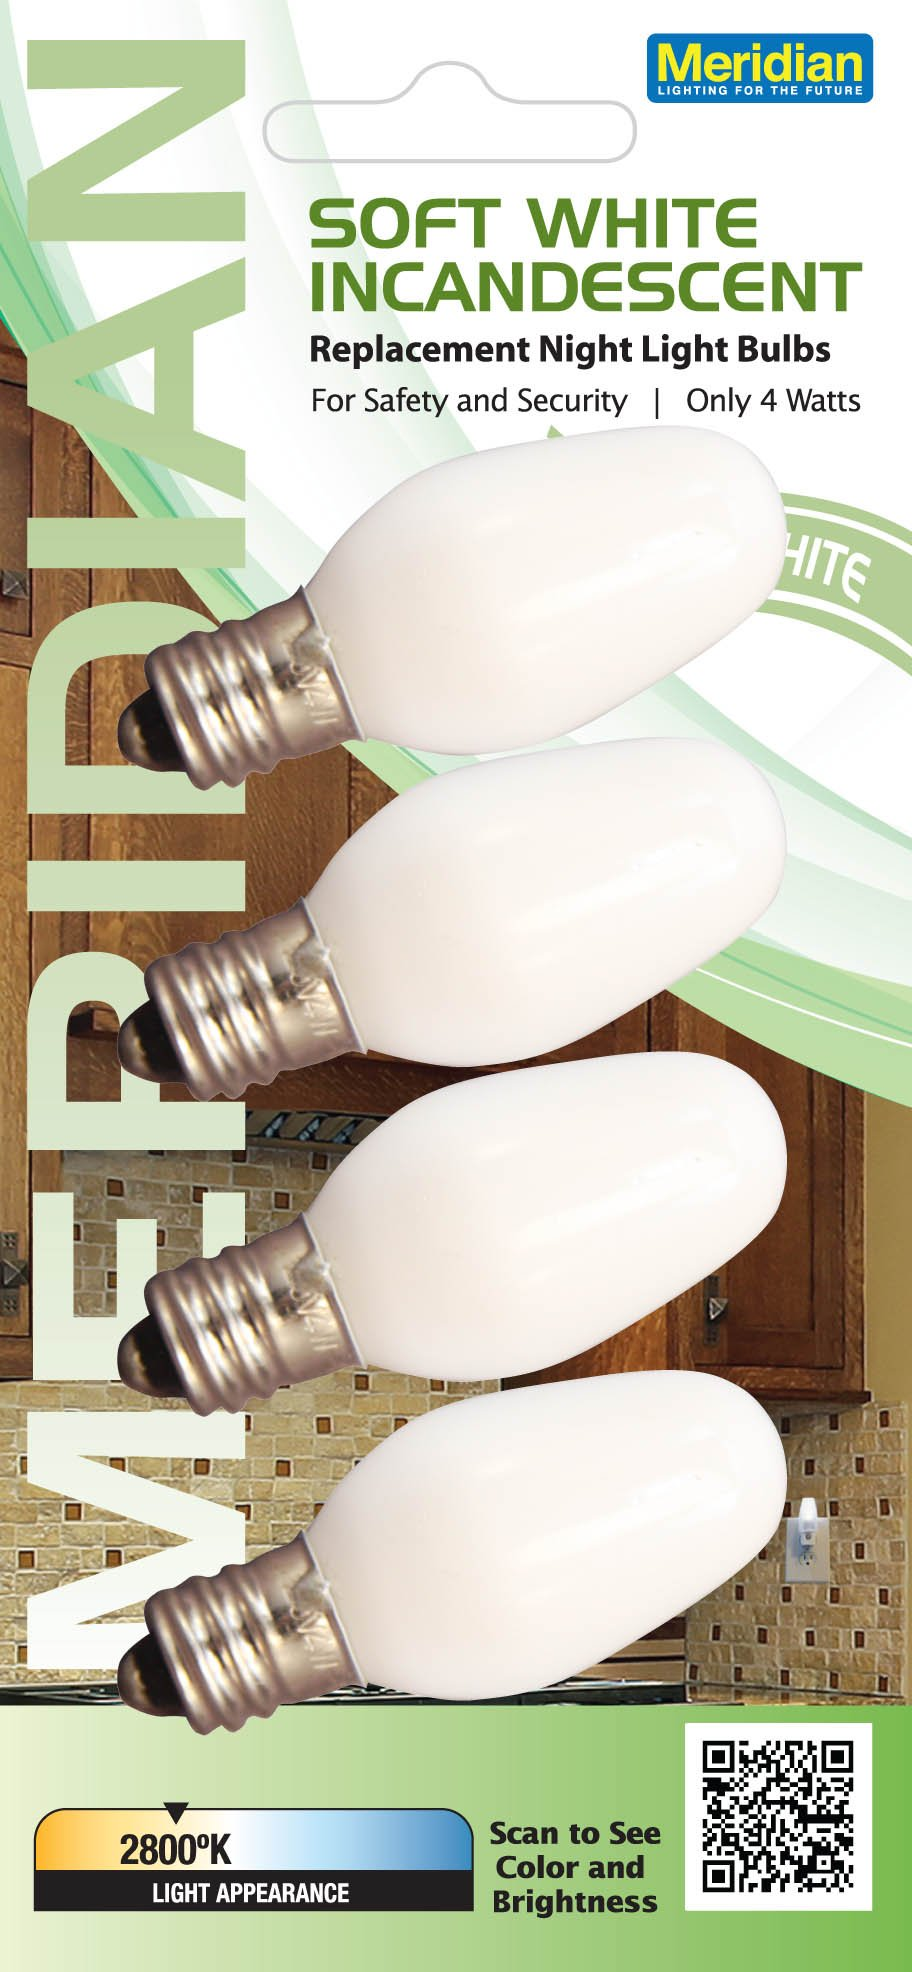 Meridian Electric 13201 Incandescent C7 Replacement Night Light Bulbs, Small, White, 4-Pack